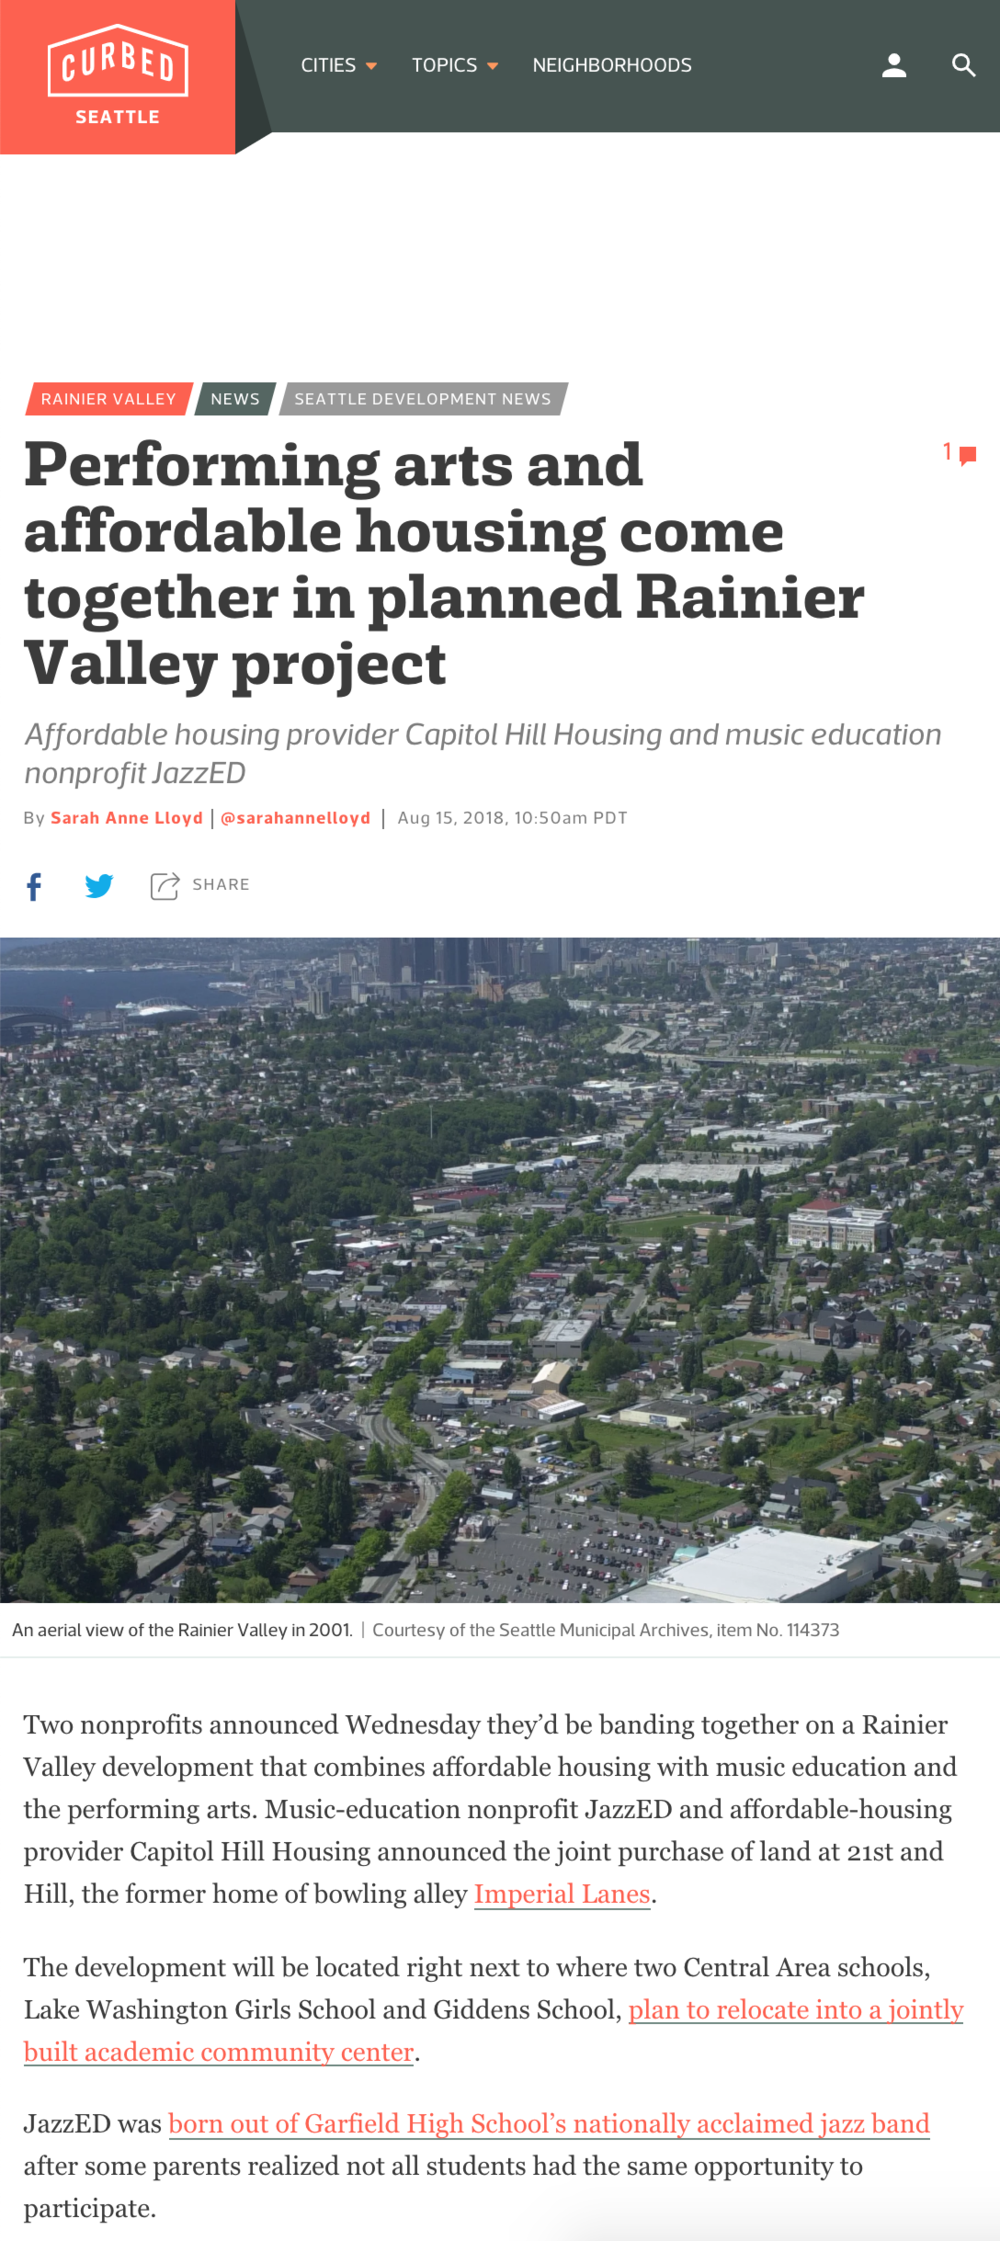 Performing arts and affordable housing come together in planned Rainier Valley projectAffordable housing provider Capitol Hill Housing and music education nonprofit JazzED - By Sarah Anne Lloyd / August 15, 2018 / Curbed Seattle